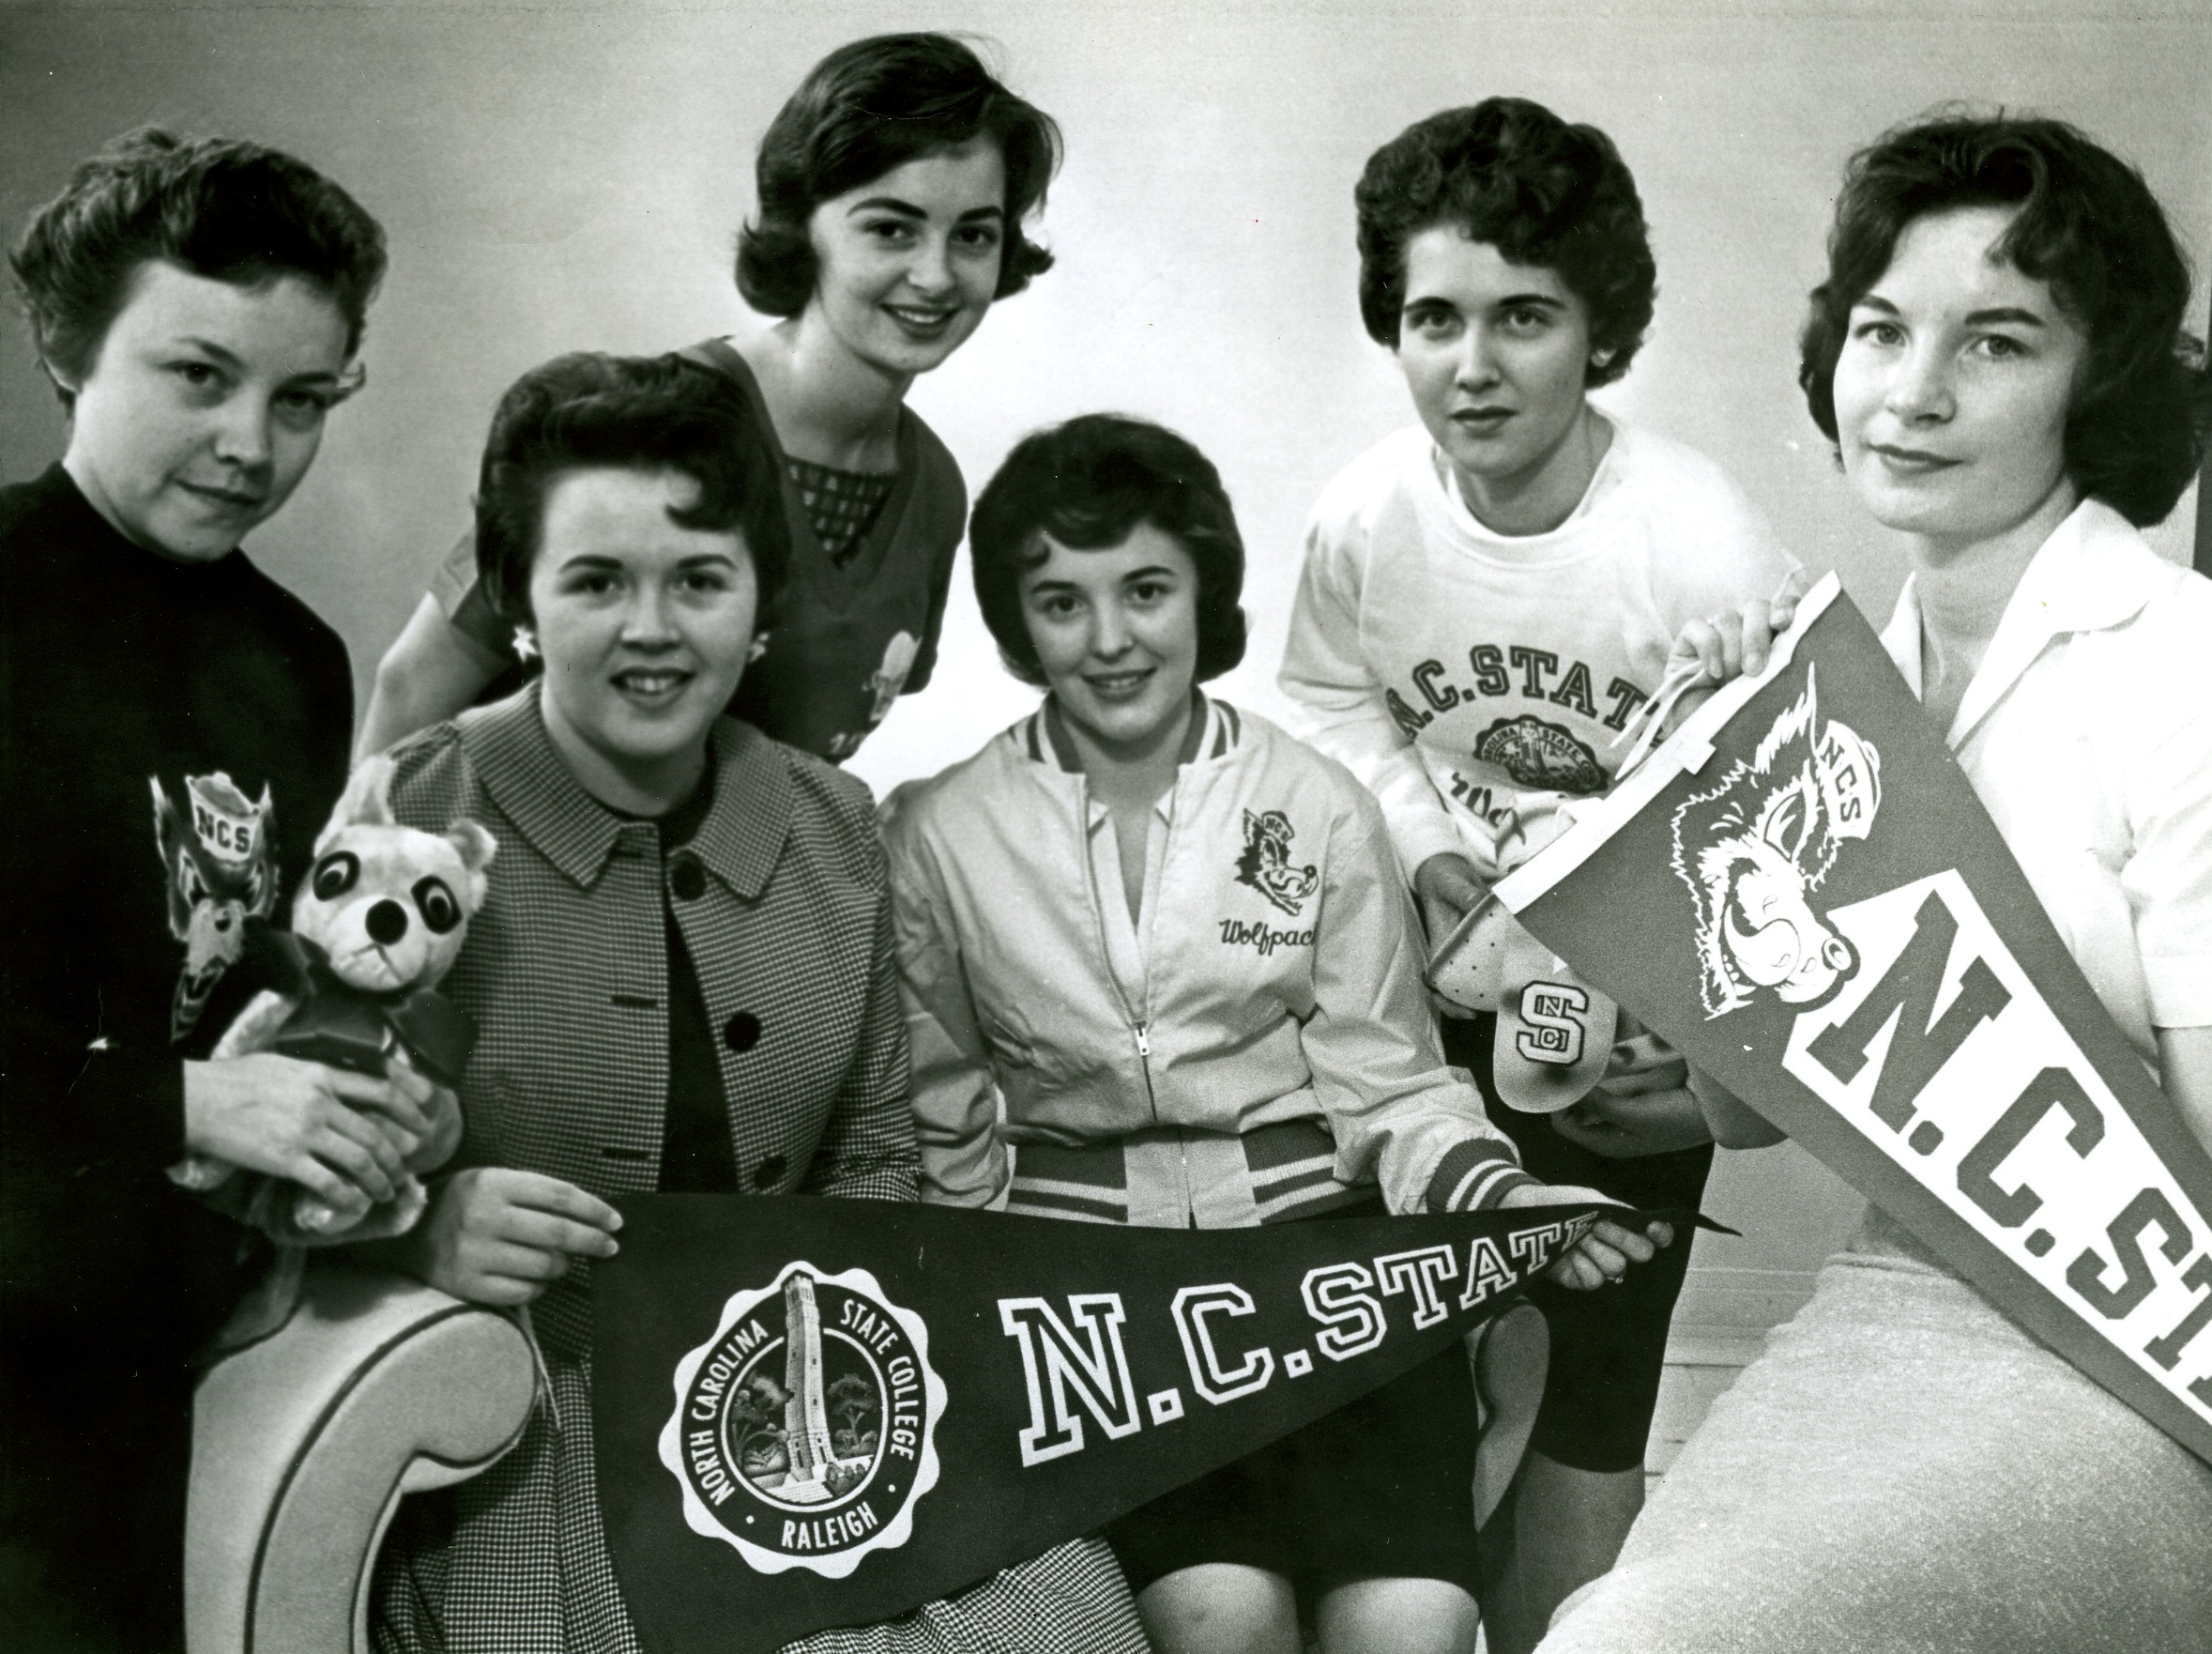 State's Mates Officers Representing the Pack, ca. 1961-1962